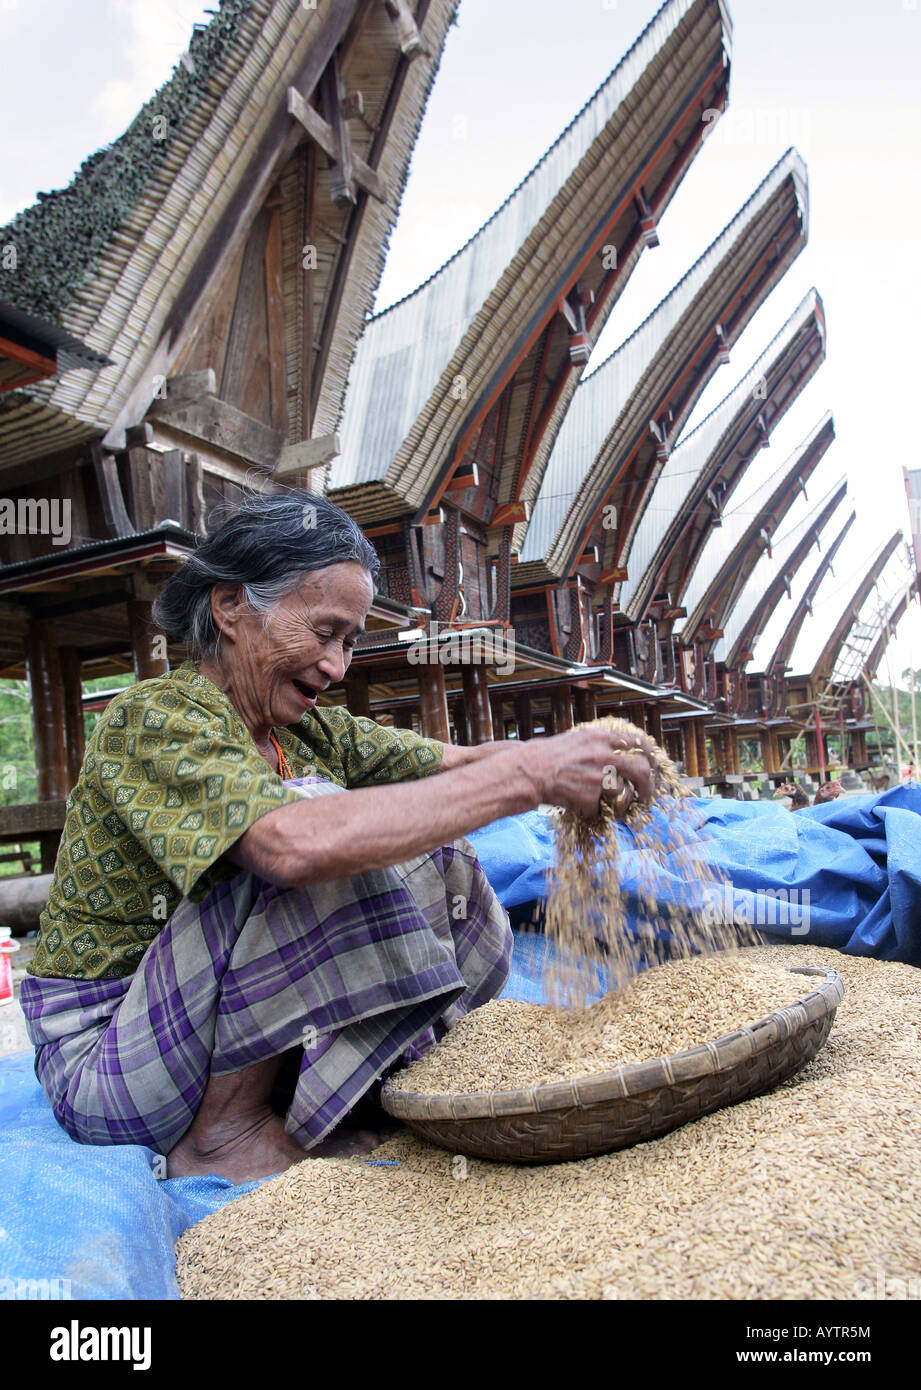 Indonesia: woman cleaning rice in front of Tongkonan houses (rice storage houses). Sulawesi Island near Rantepao - Stock Image